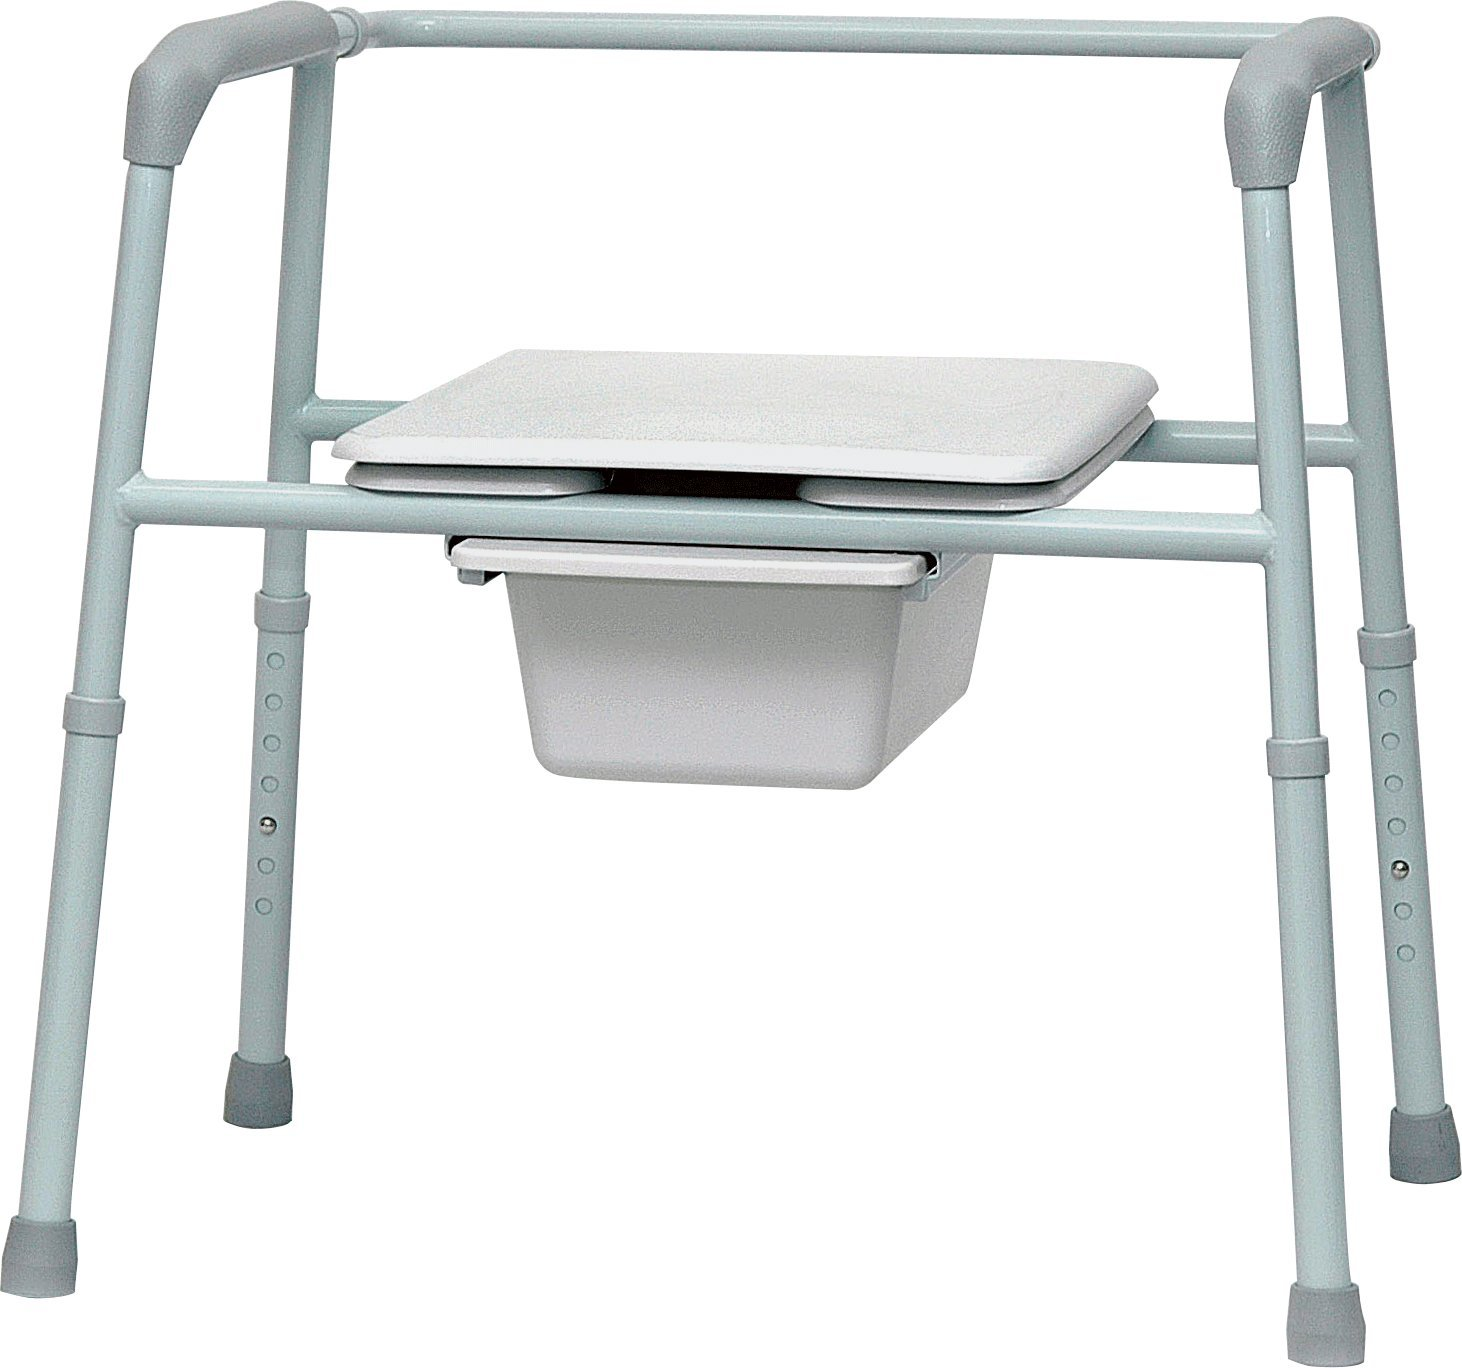 ISG411 - Professional Medical Imports (pmi) Bariatric Commode, 15-1/2 x 15-1/2 Seat Dimension